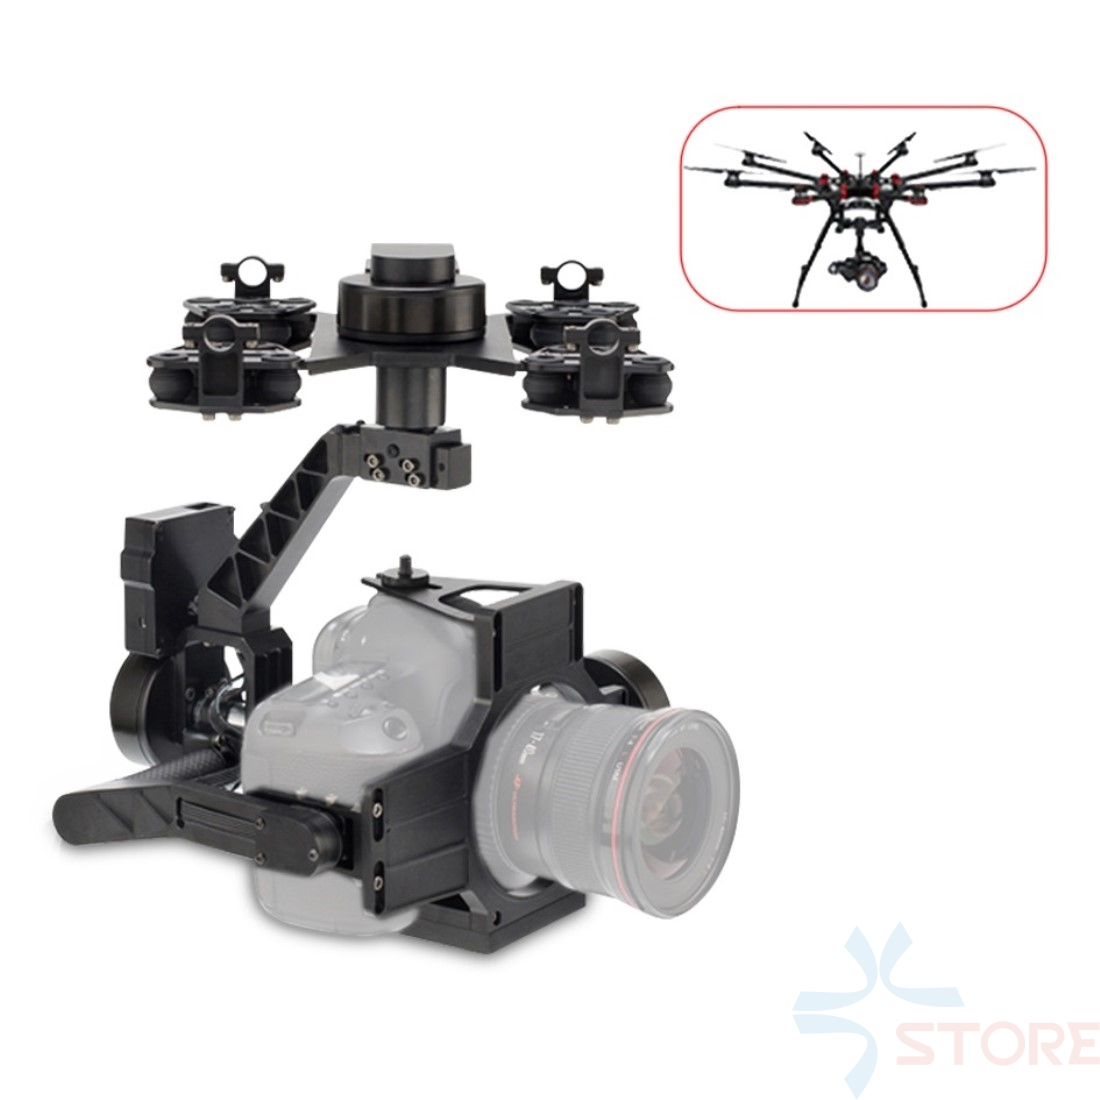 Aerial Photography 3-Axis UAV Gimbal Camera Mount for Video Film DSLR Canon 5D3 Nikon D800 GH4 Sony A7 / NEX5 A5100 6000 A7S